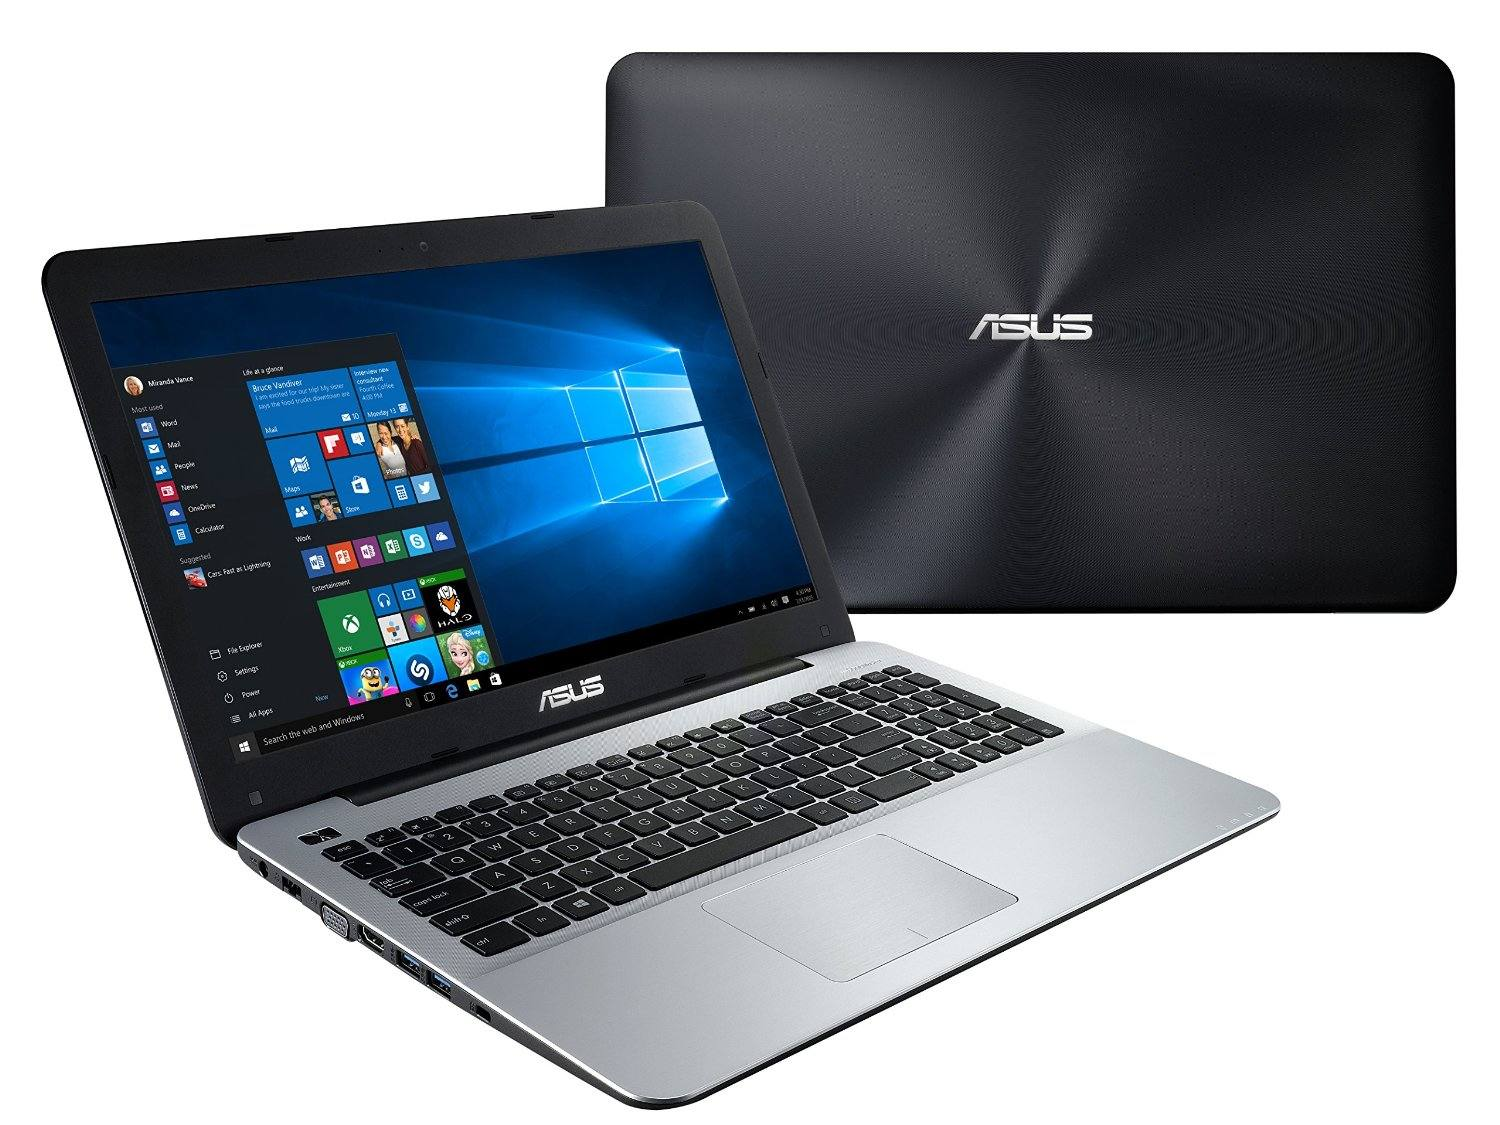 Best Laptop/Notebook for College? Lenovo IdeaPad? Toshiba? HP-Business?